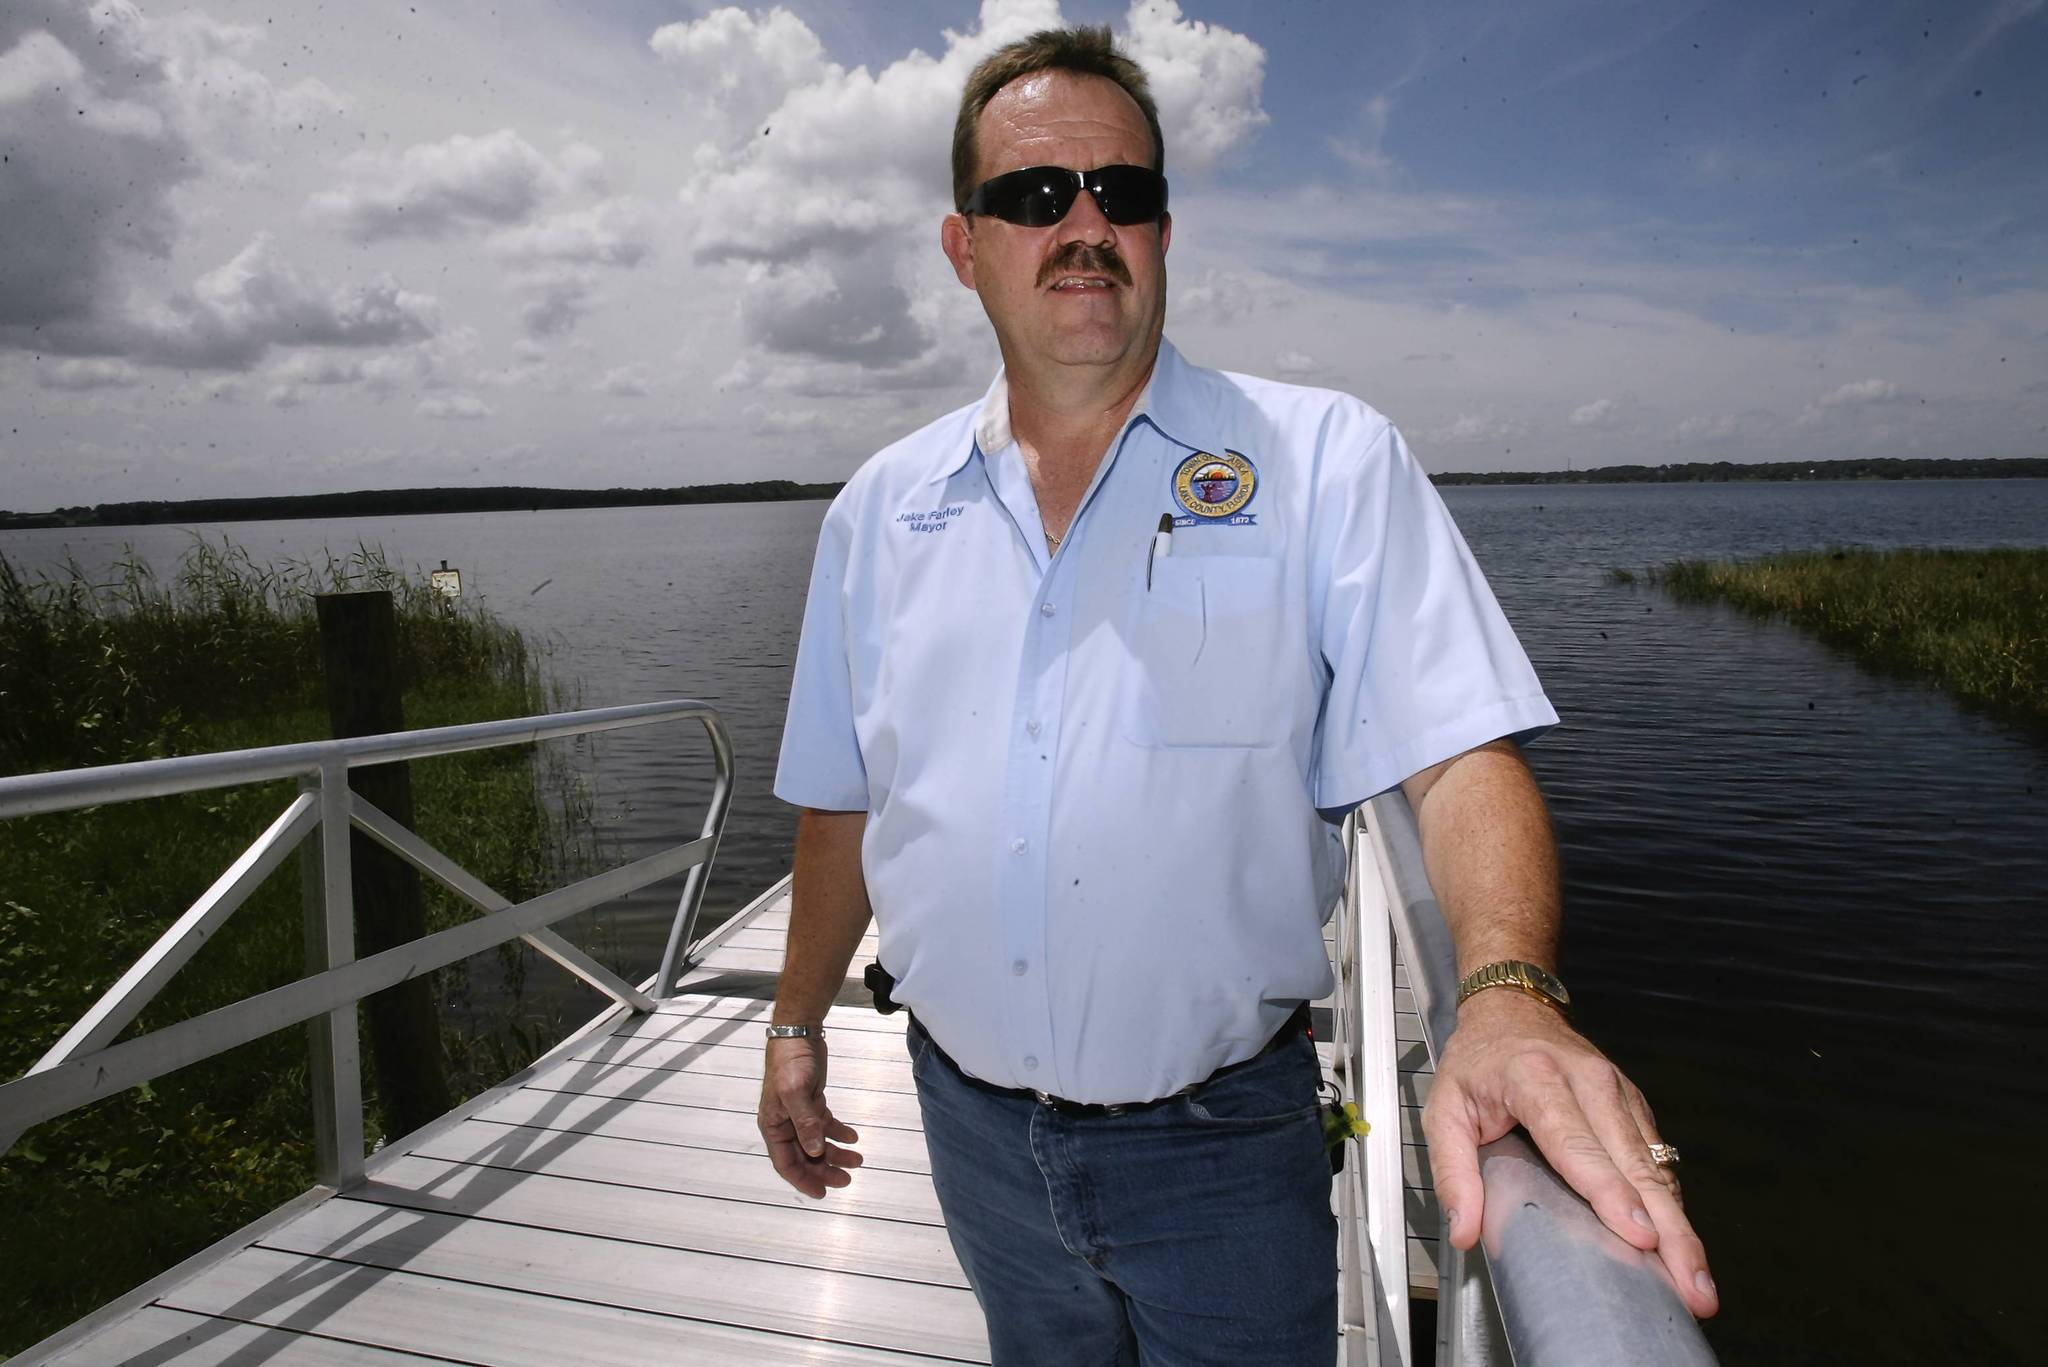 Astatula is exploring the idea of having its own water utility. Mayor Jake Farley, pictured at the new dock, thinks it would be advantageous for the town to have a utility.